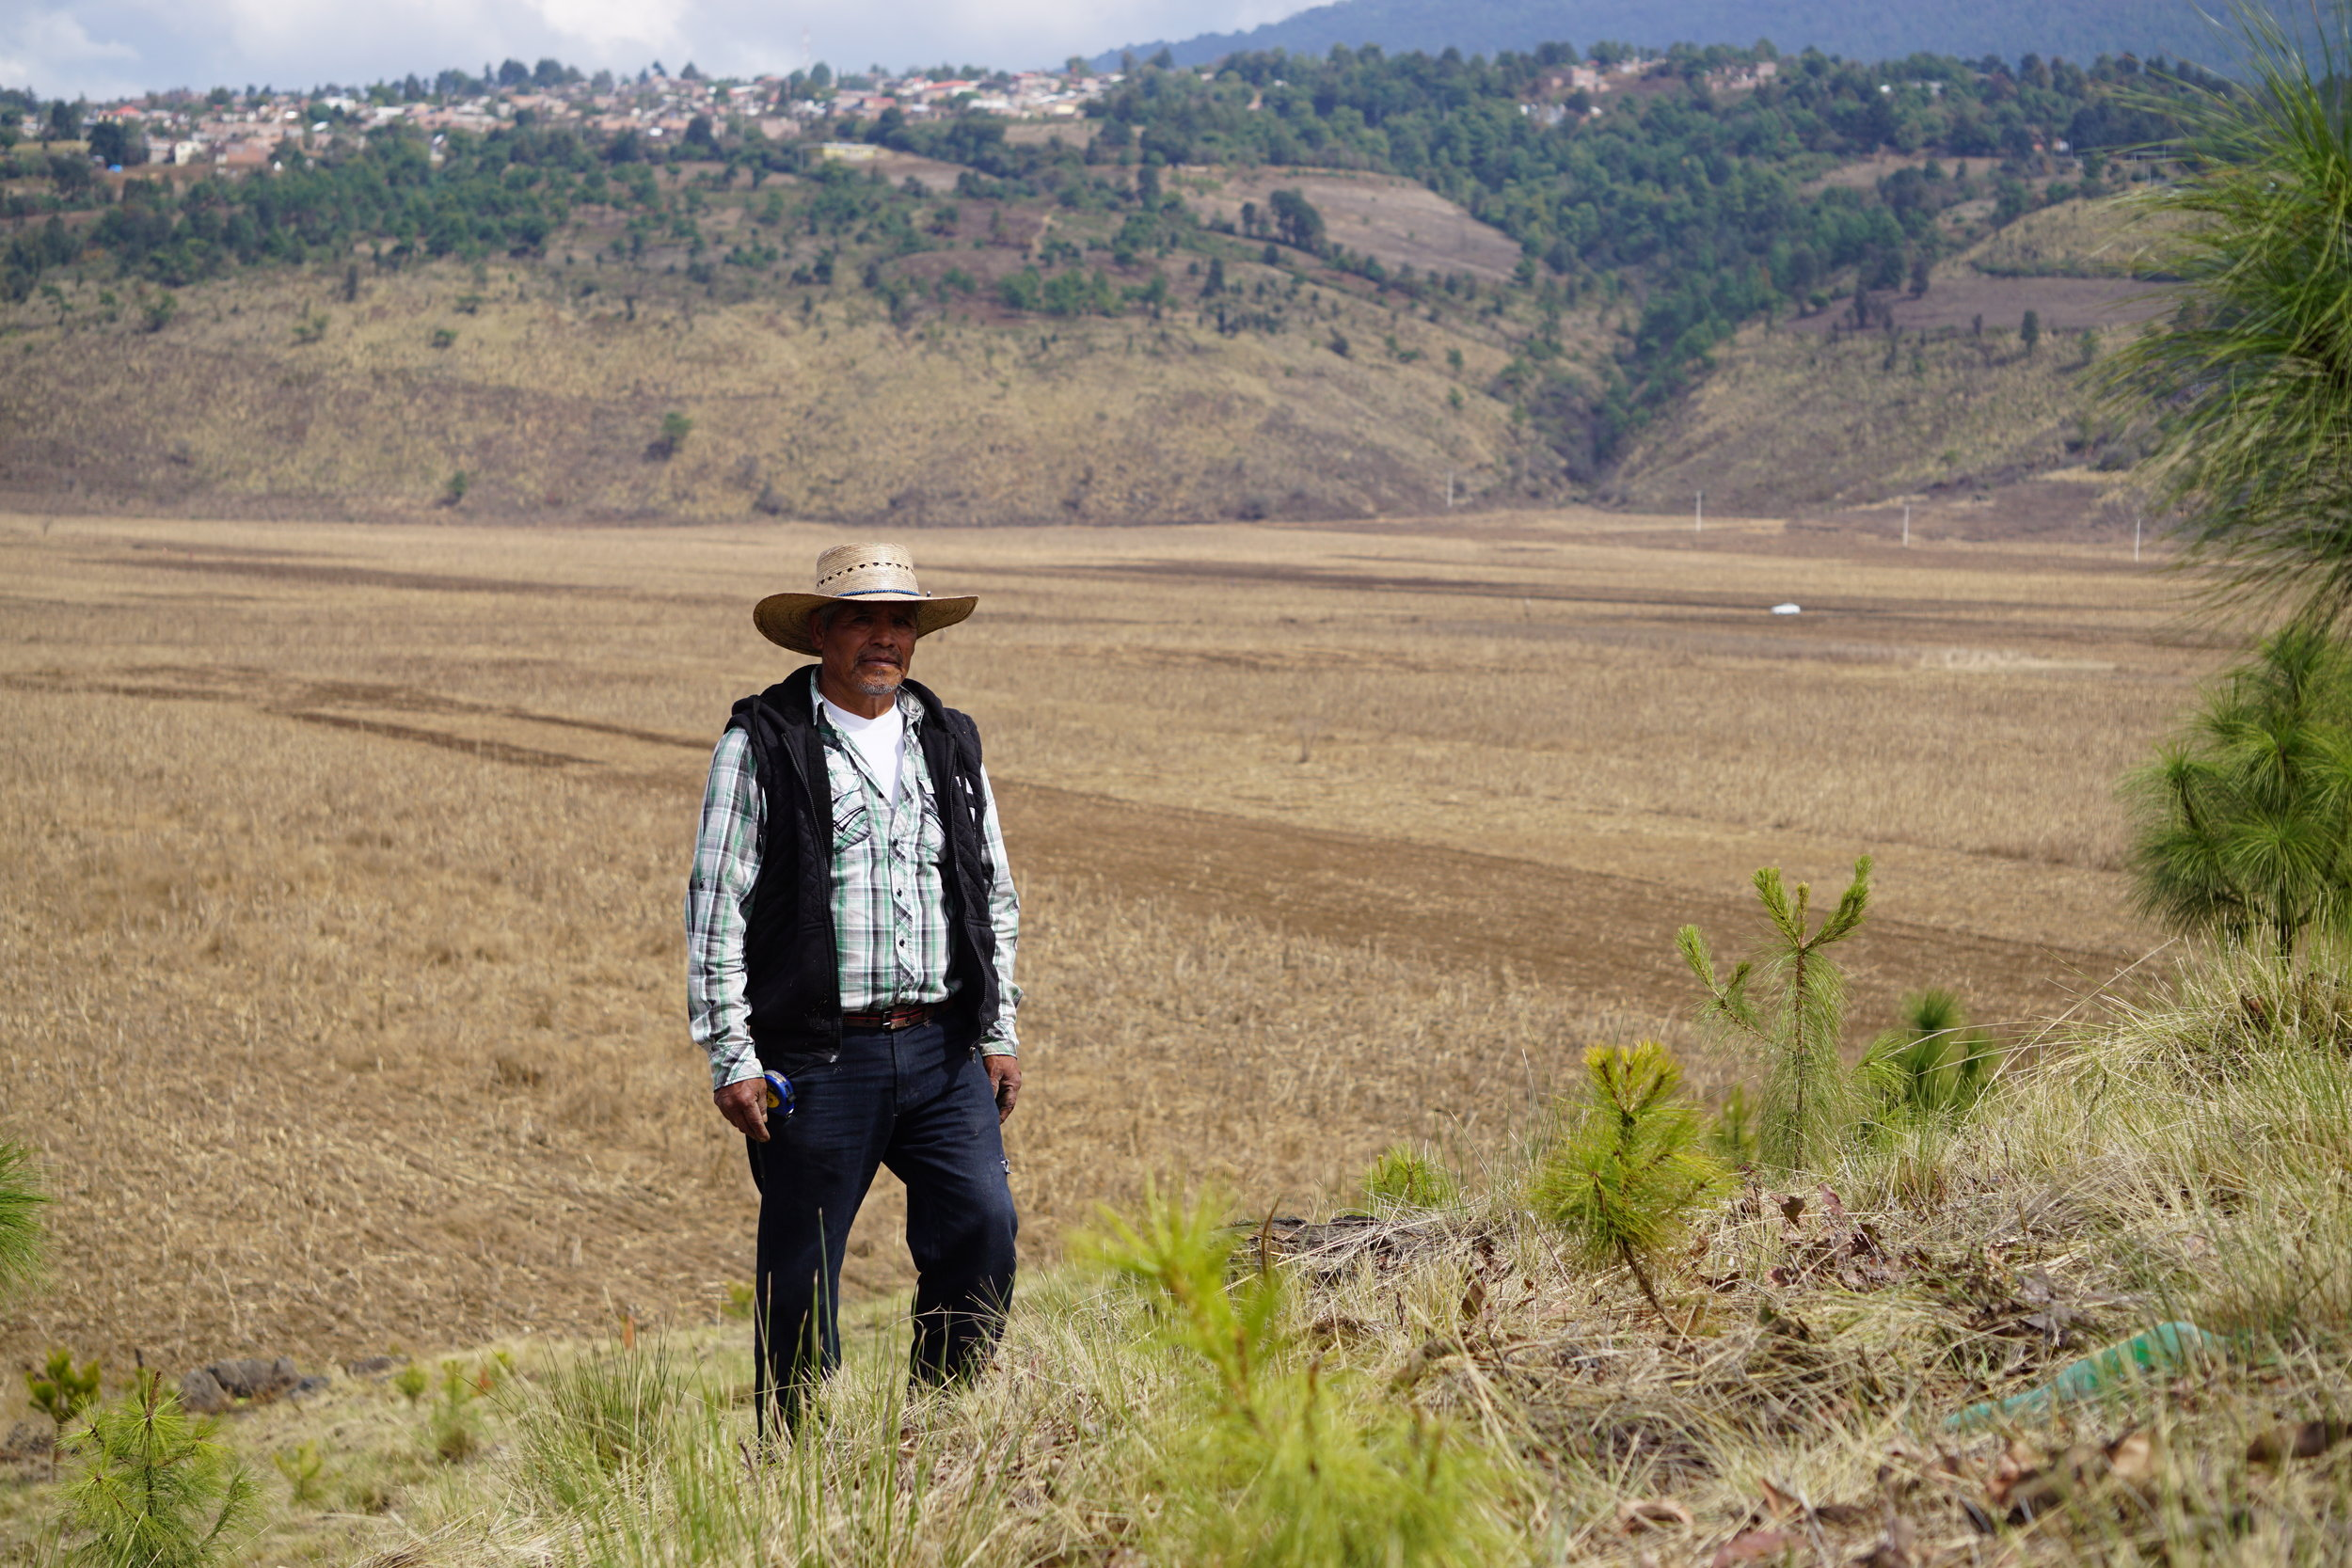 - In the time that I was in Georgia, I was reforesting, trimming - doing work that protected pine trees. One day I thought to myself, why I am I doing this work in another country? Why am I not doing this in my own country?- Catarino Joaquín Campos, Resinero, Cherán Atzicurín